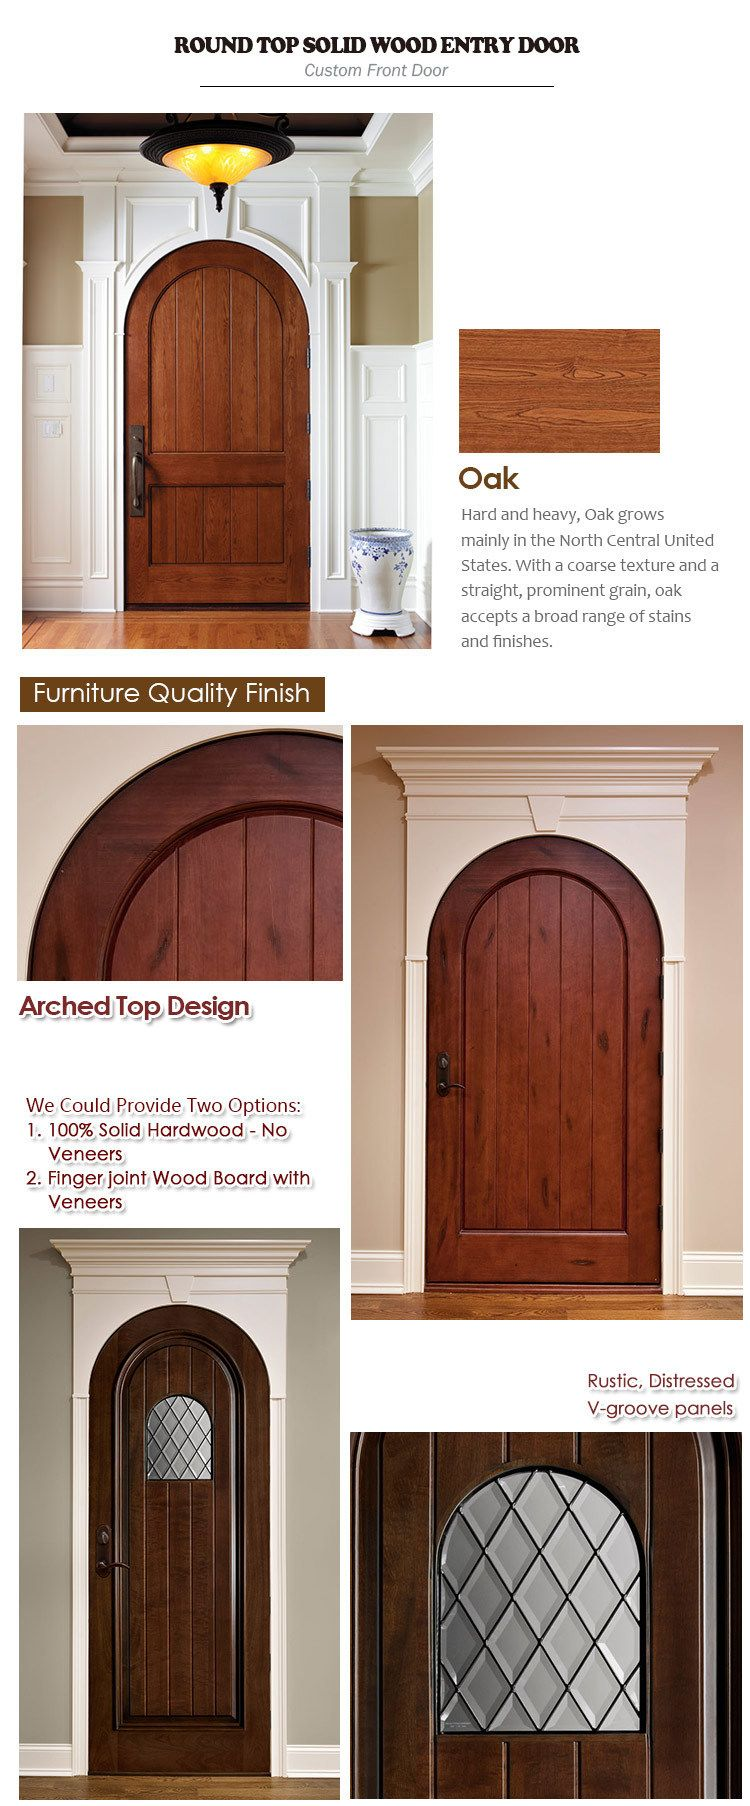 Hot Item World Best Selling Round Top Design Interior Brown Color Plank Panel Entry Door Custom Front Doors Entry Doors French Entry Doors